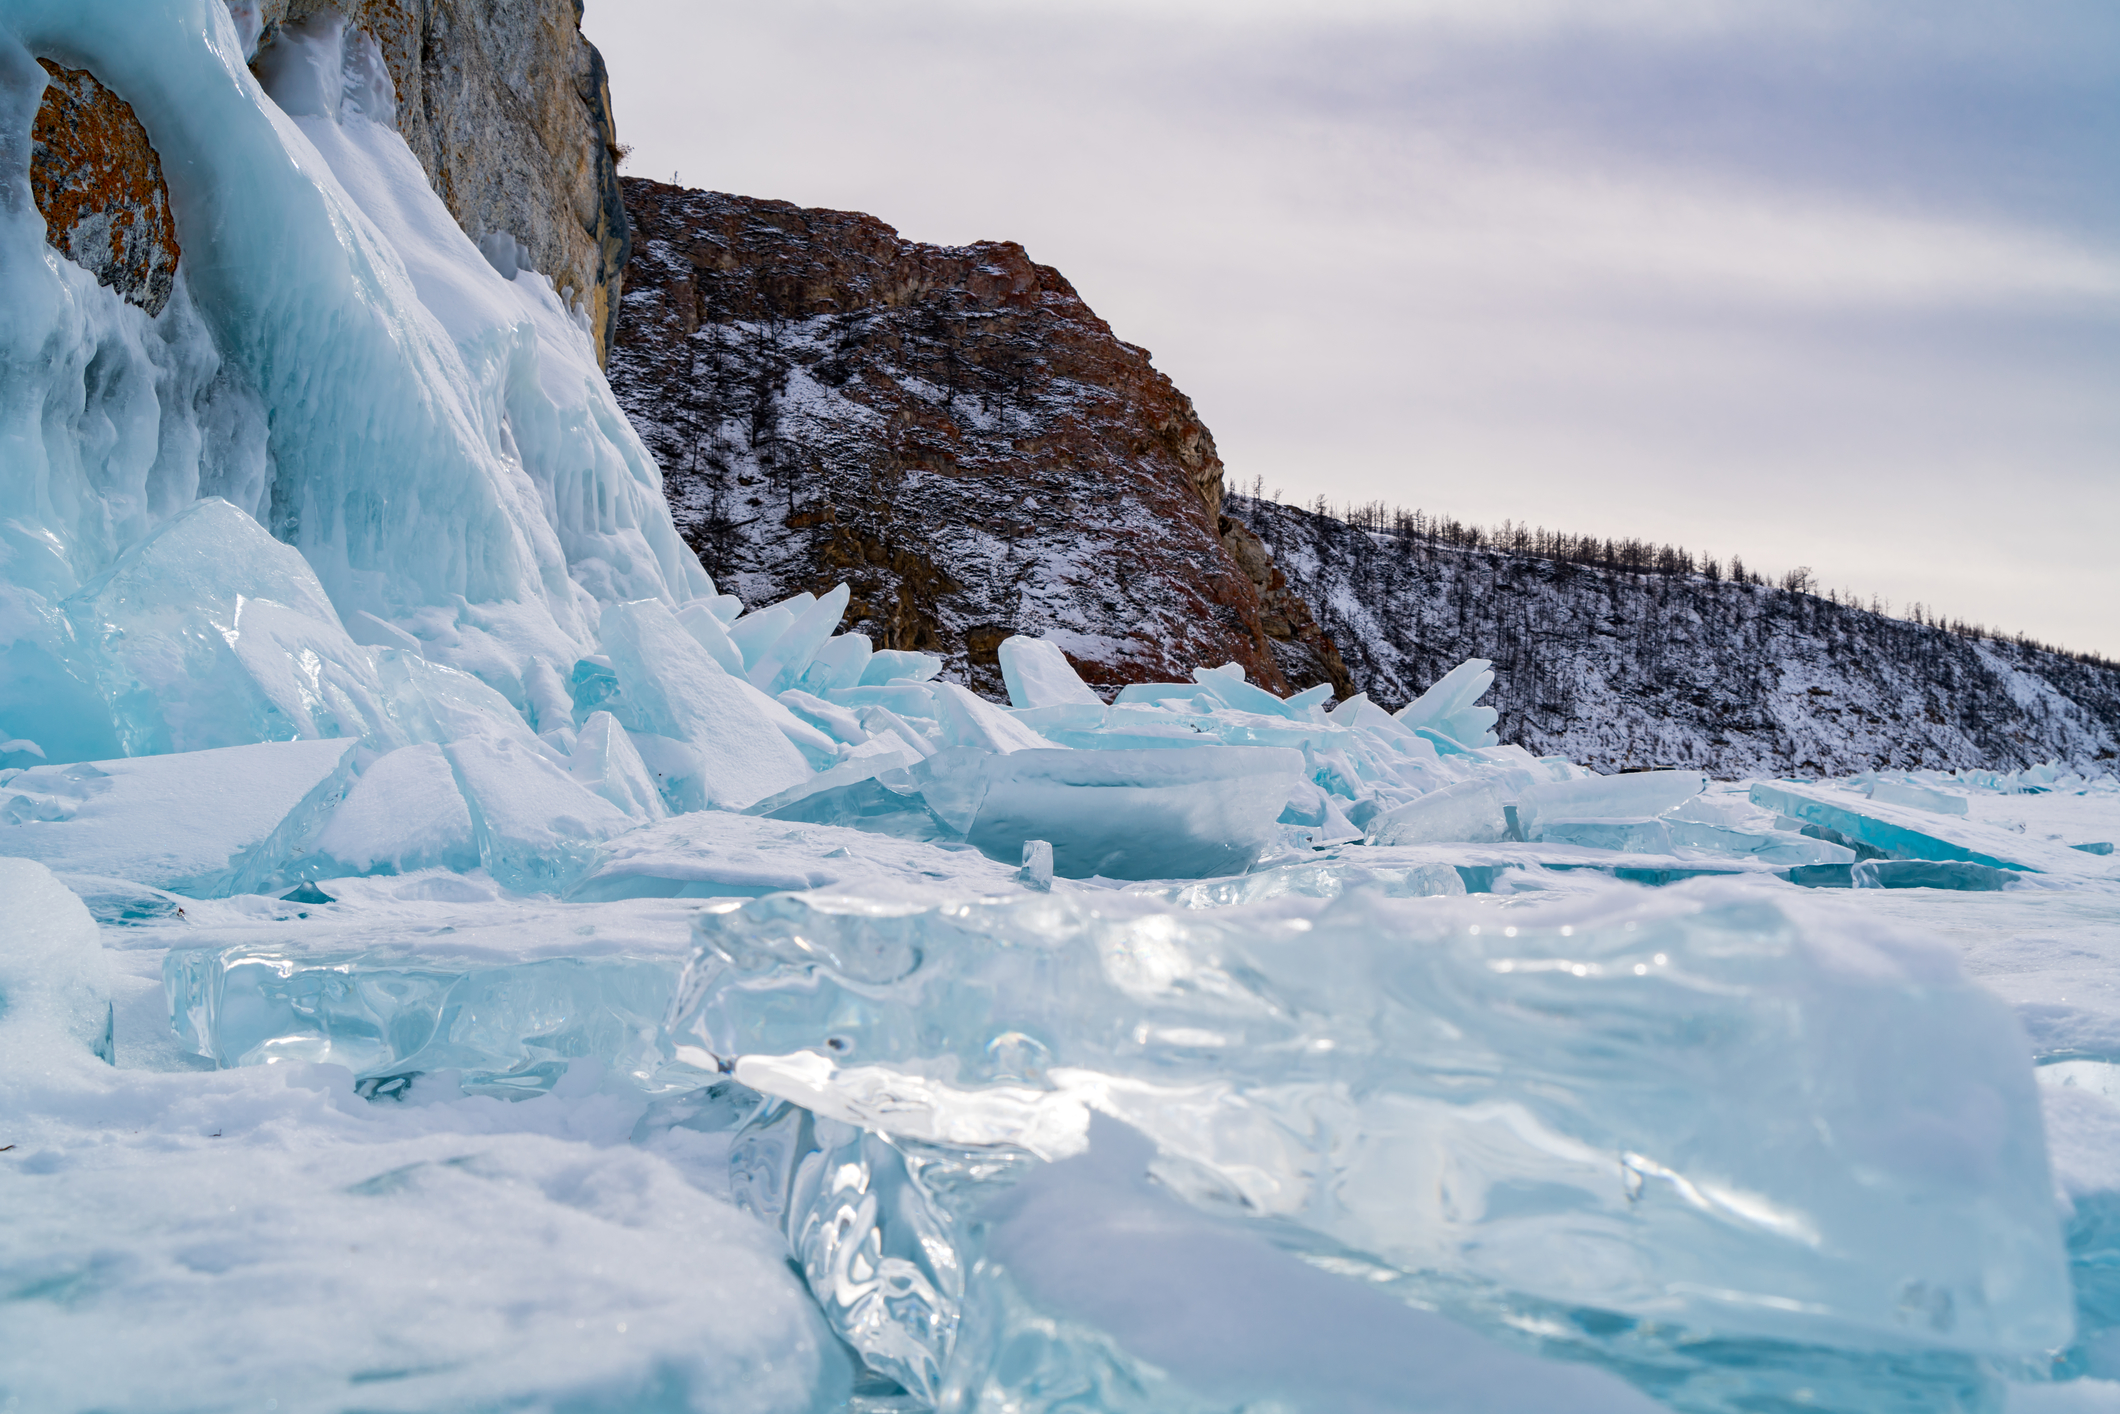 Ice blocks covered with snow at Frozen Lake Baikal